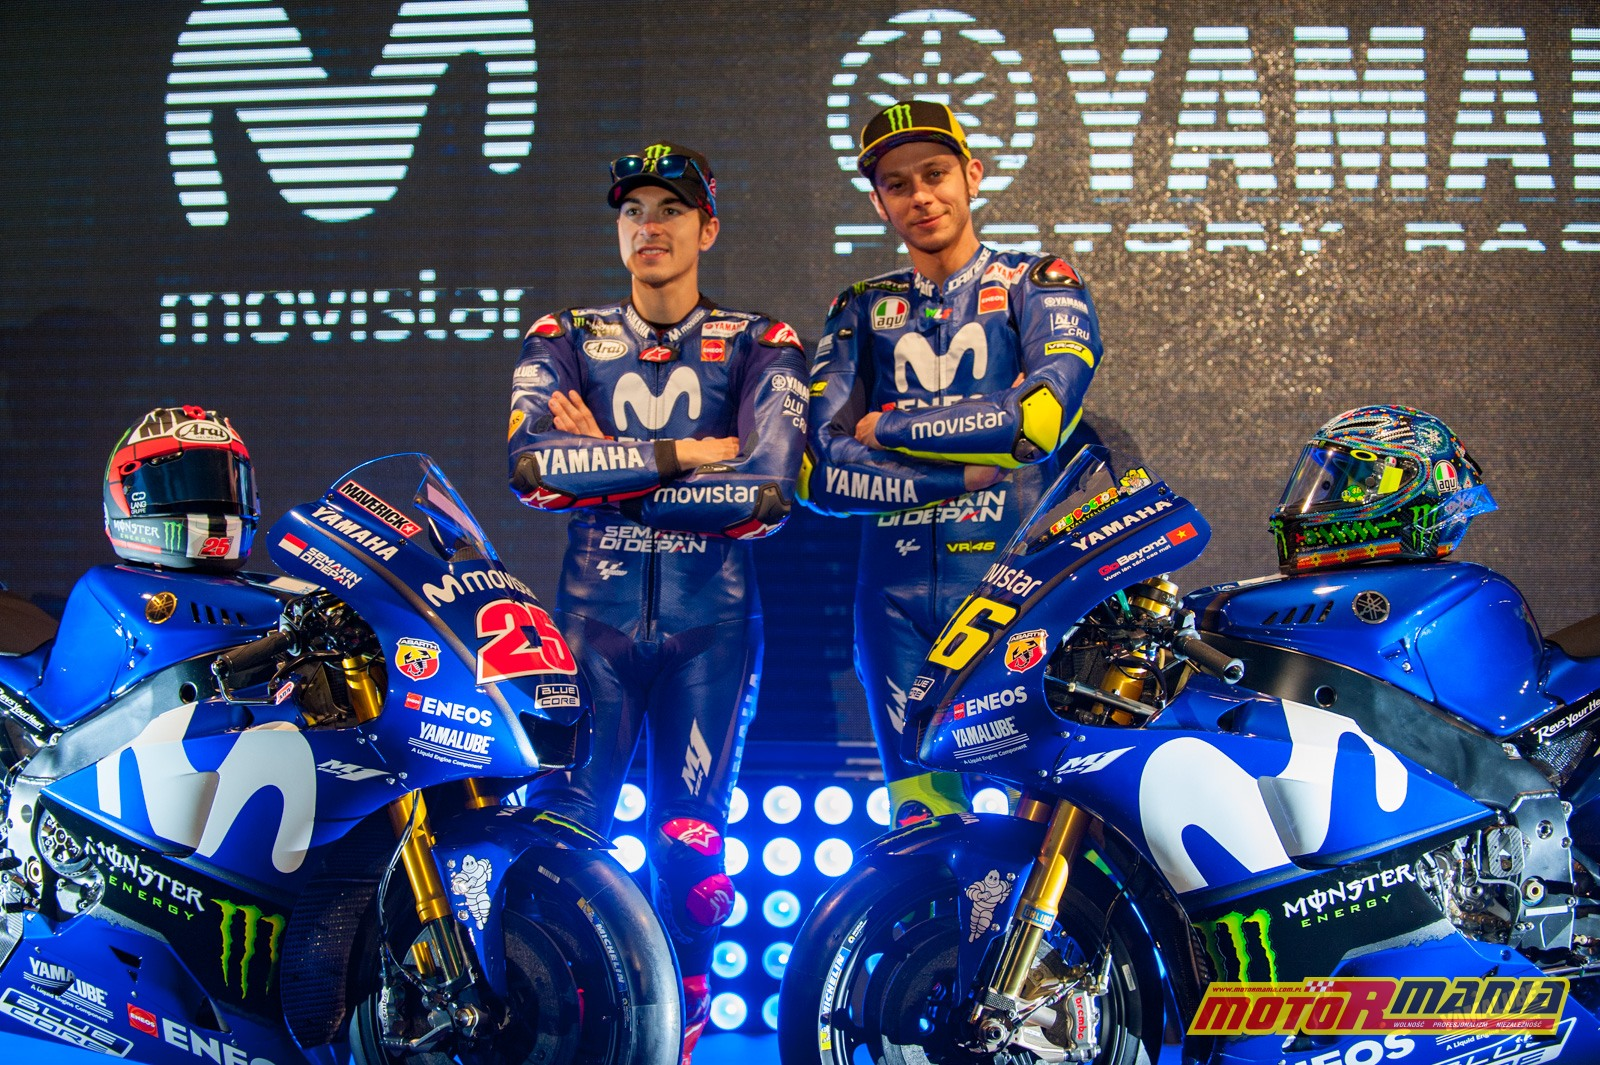 PREZENTACJA YAMAHA MOVISTAR 2018 (55 of 75)